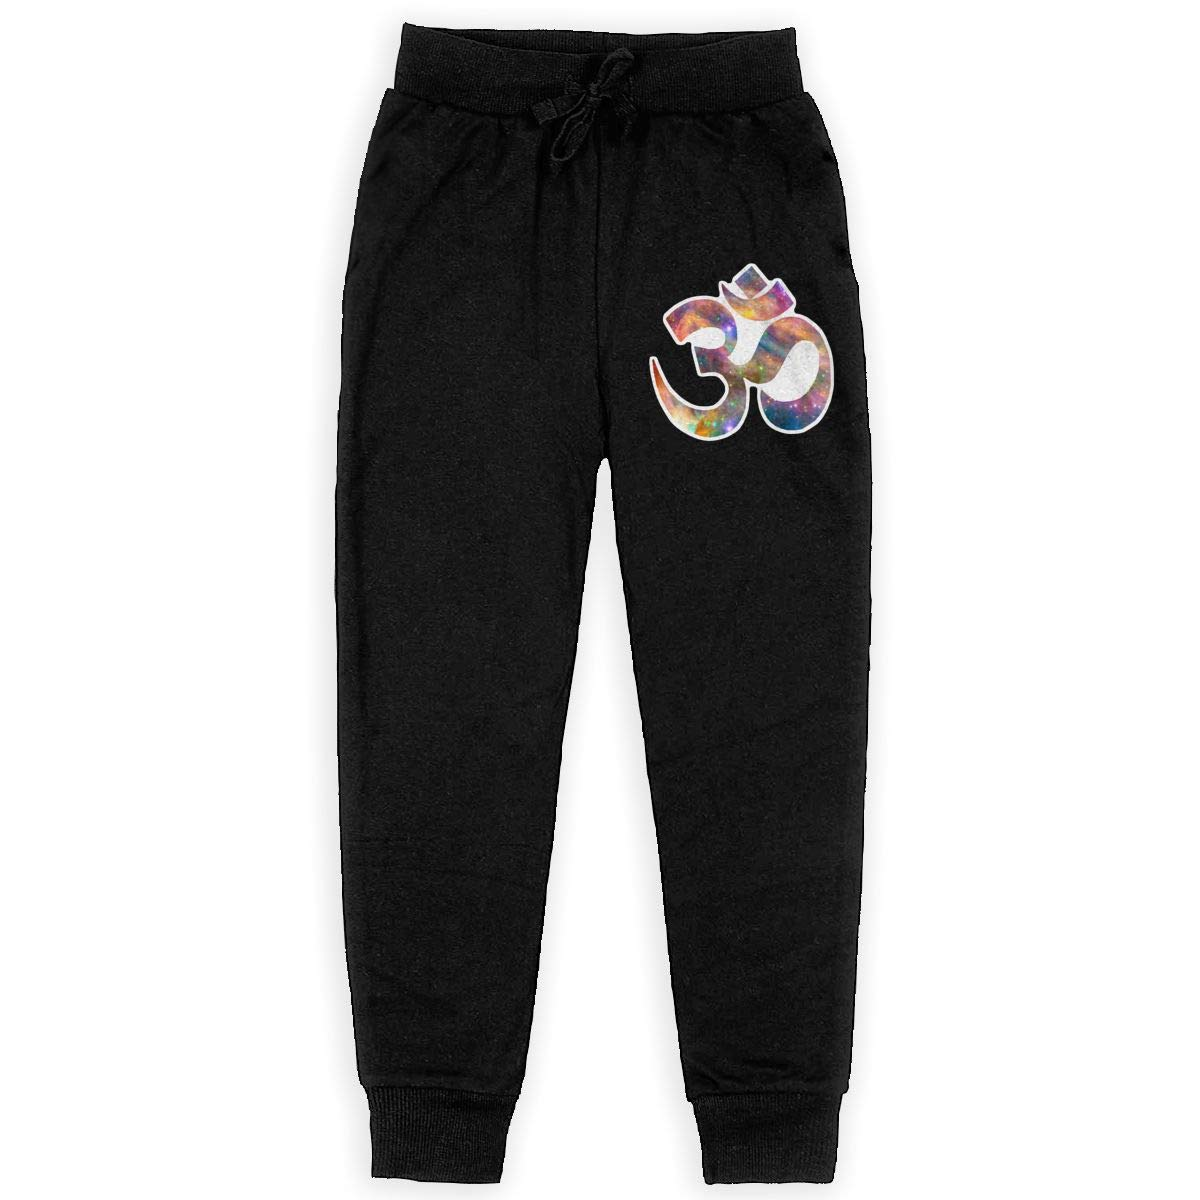 IufnNRJndfu Number Boys Athletic Smart Fleece Pant Youth Soft and Cozy Sweatpants